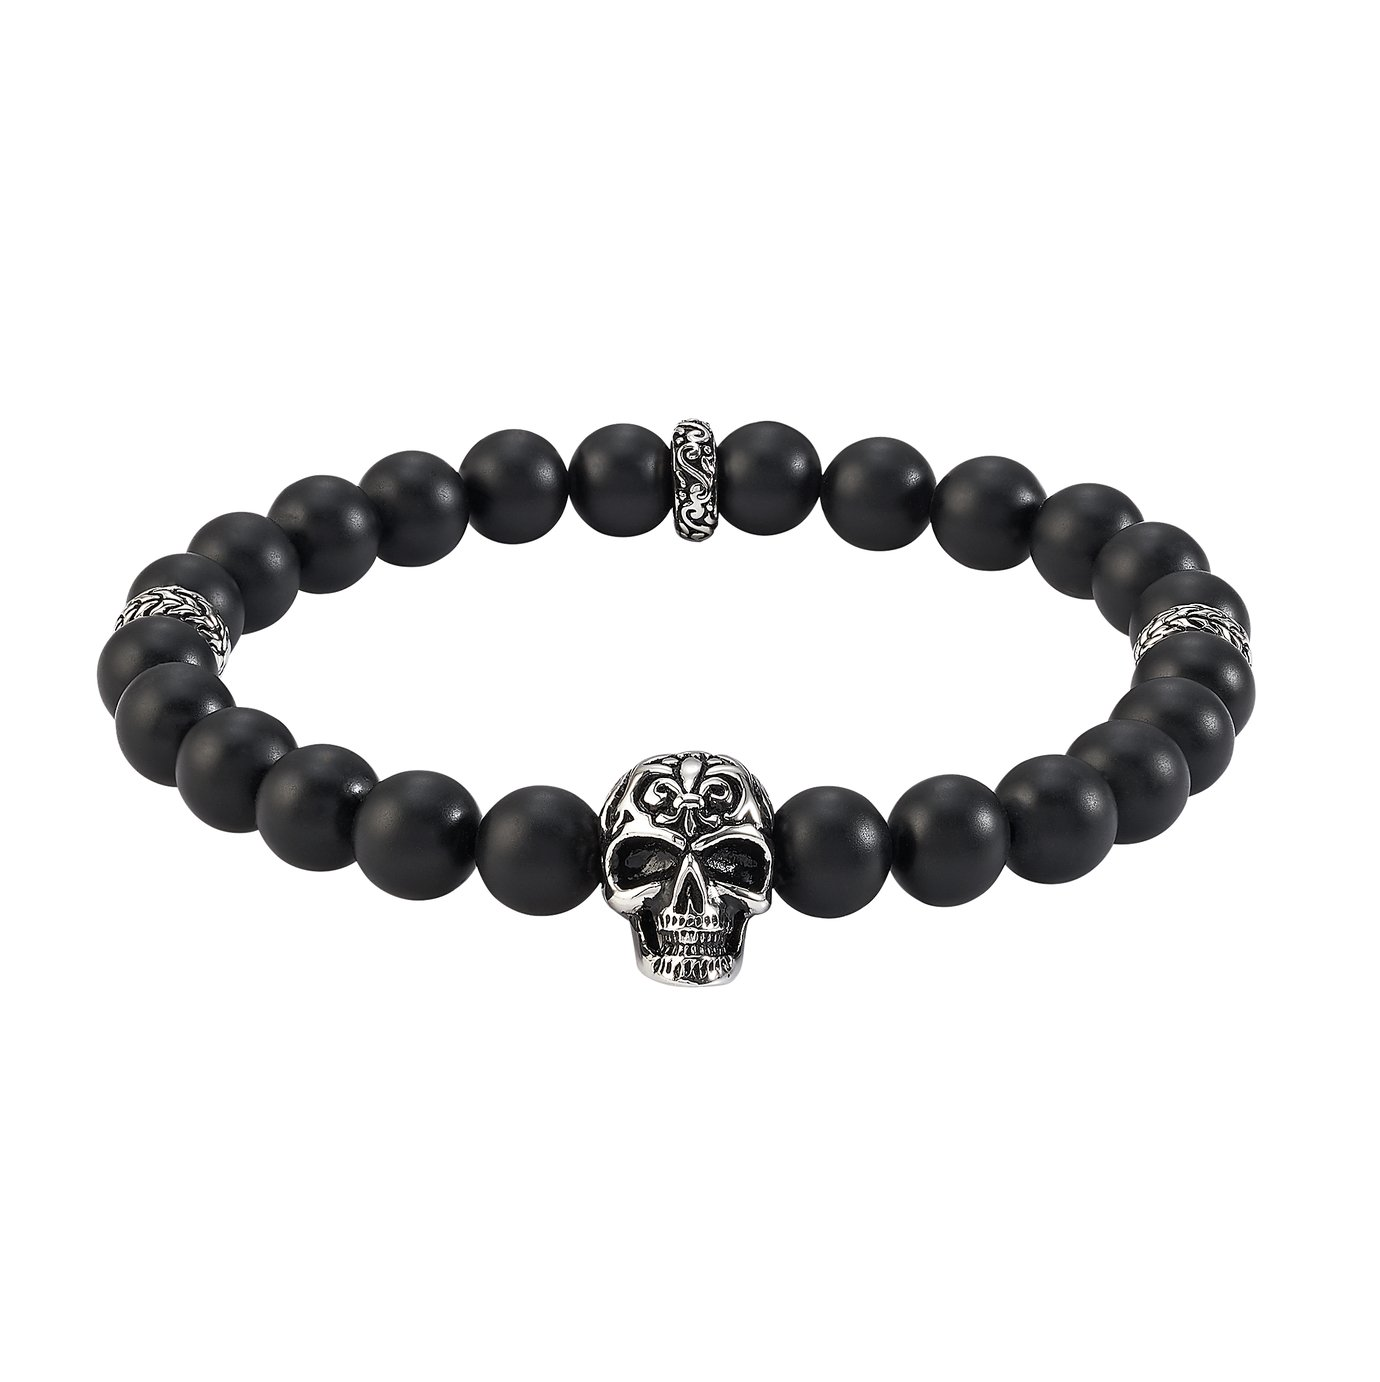 Revere Stainless Steel with Skull Bead Bracelet